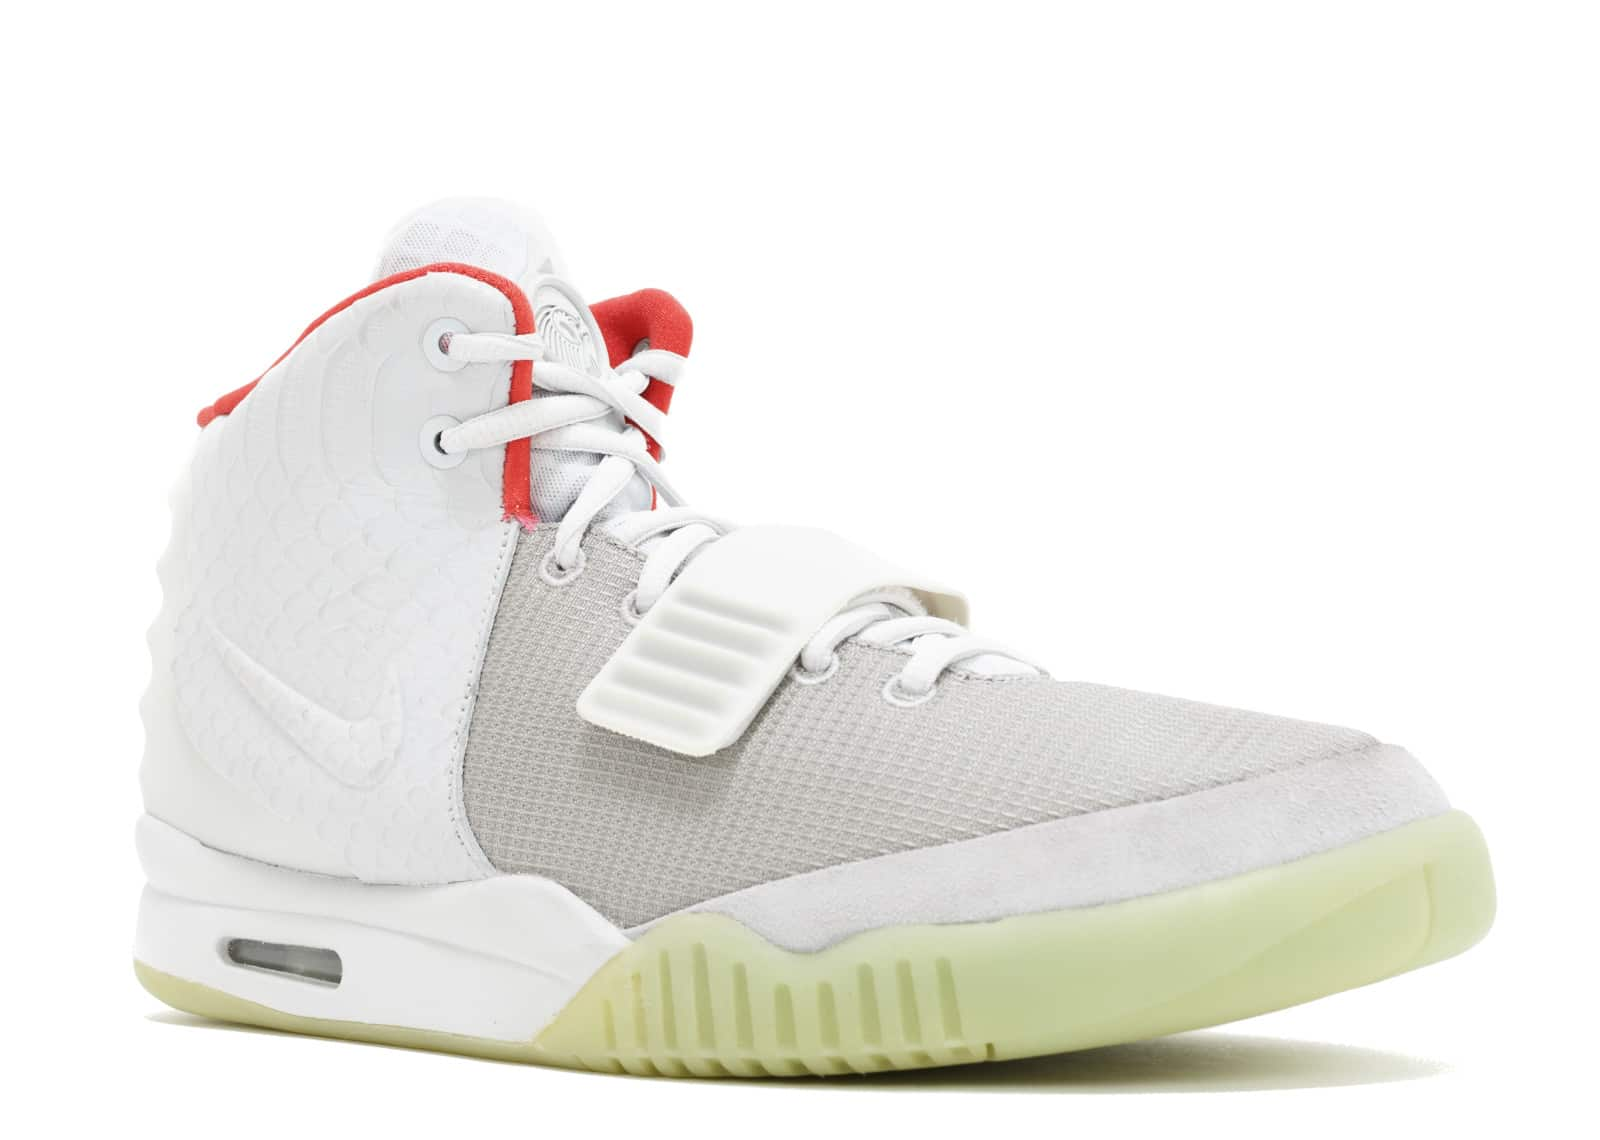 Buy Your size Nike Air Yeezy NRG Black sneakers